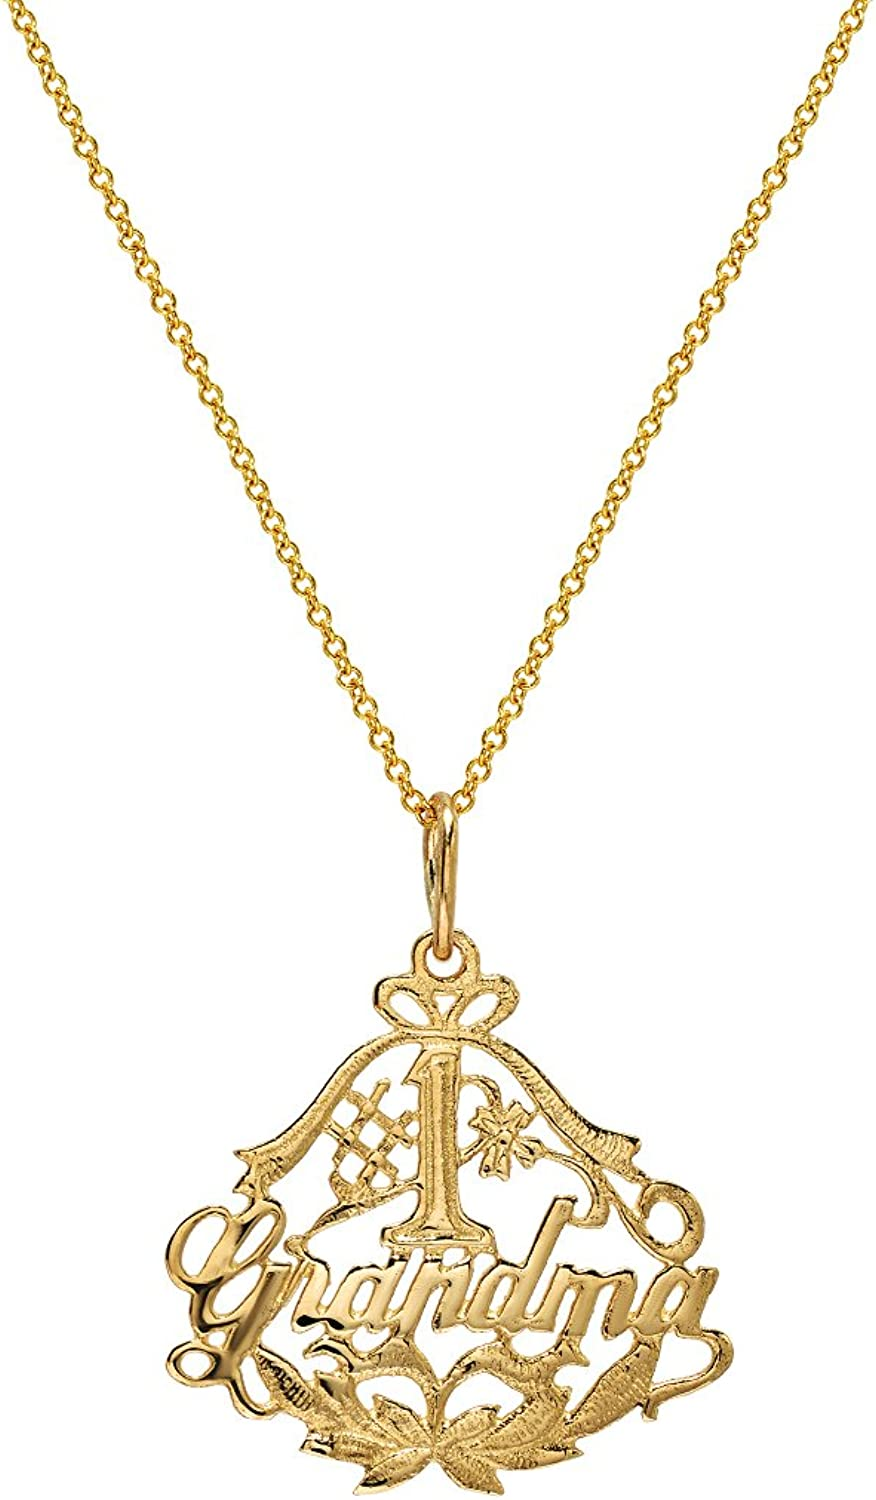 14K Yellow gold  1 Grandma Pendant Necklace, 18